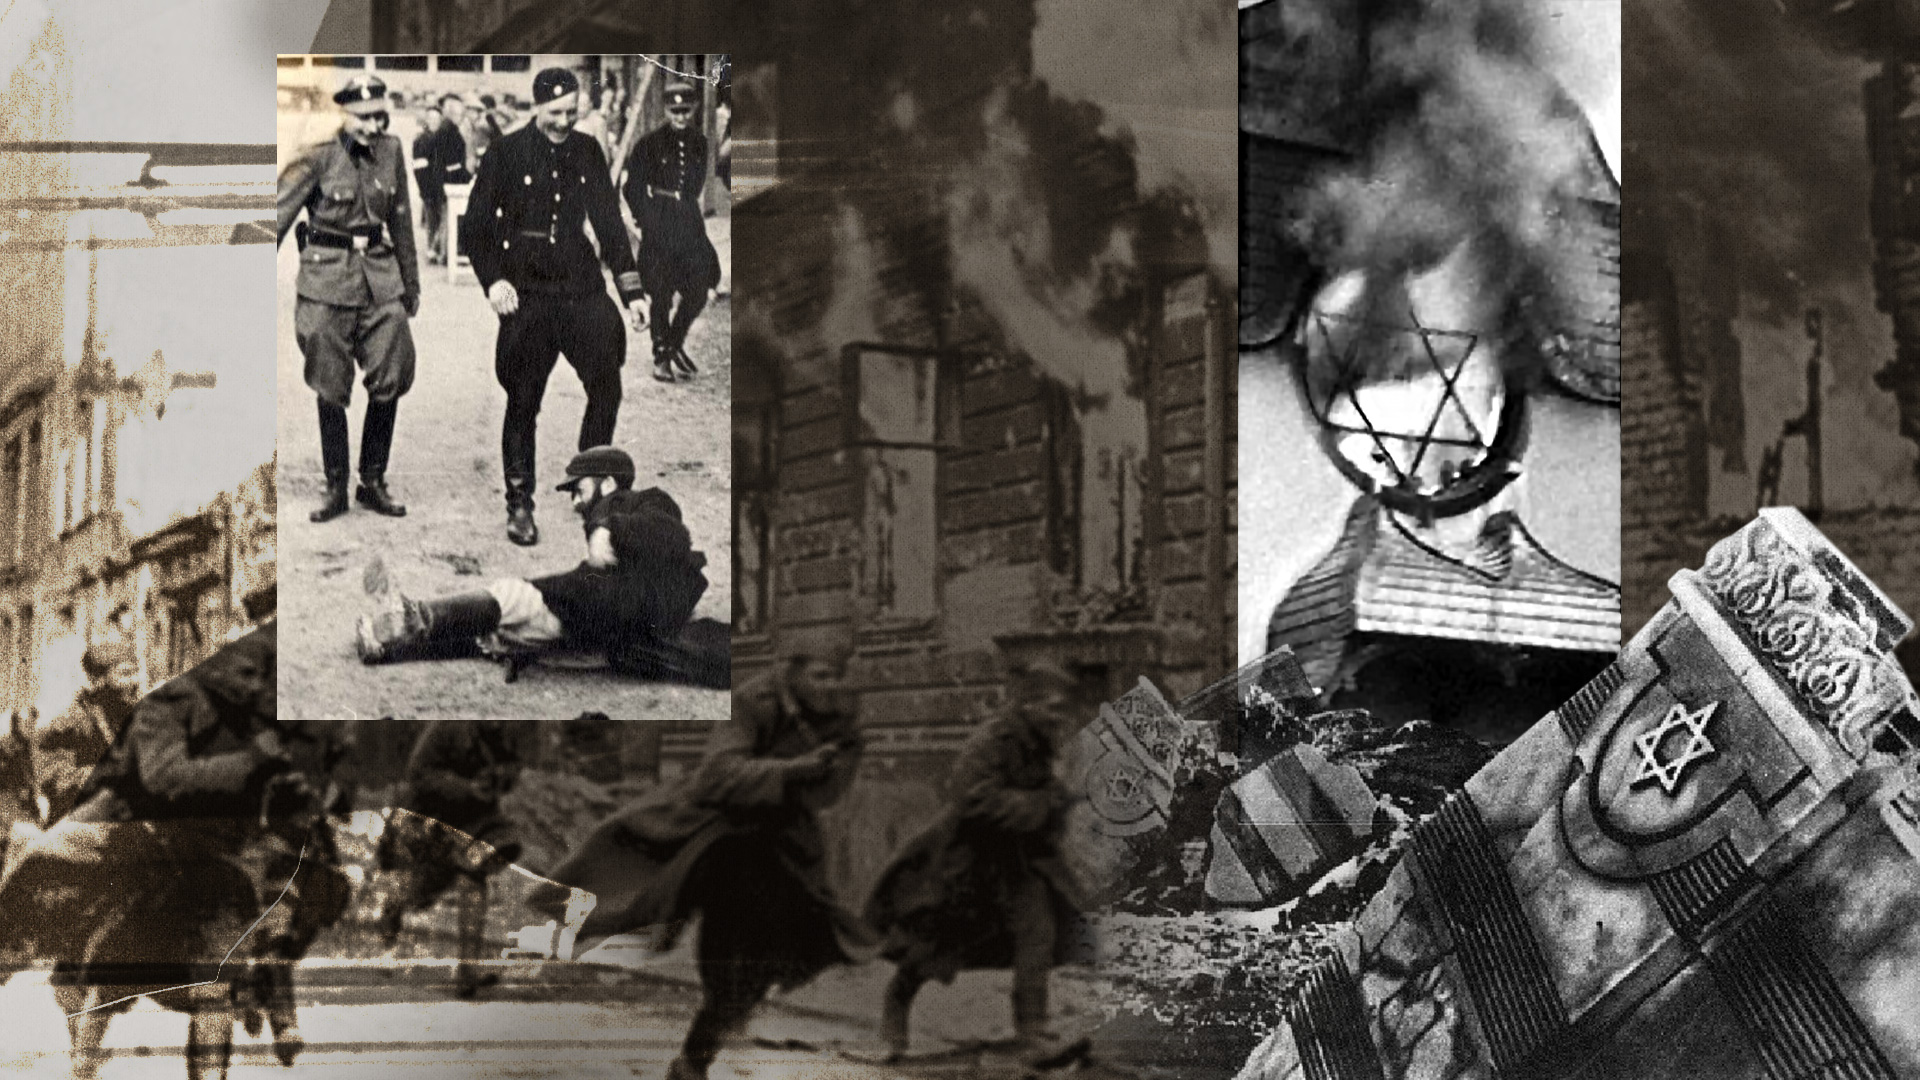 Acts of violence against the Jews leading up to the Holocaust